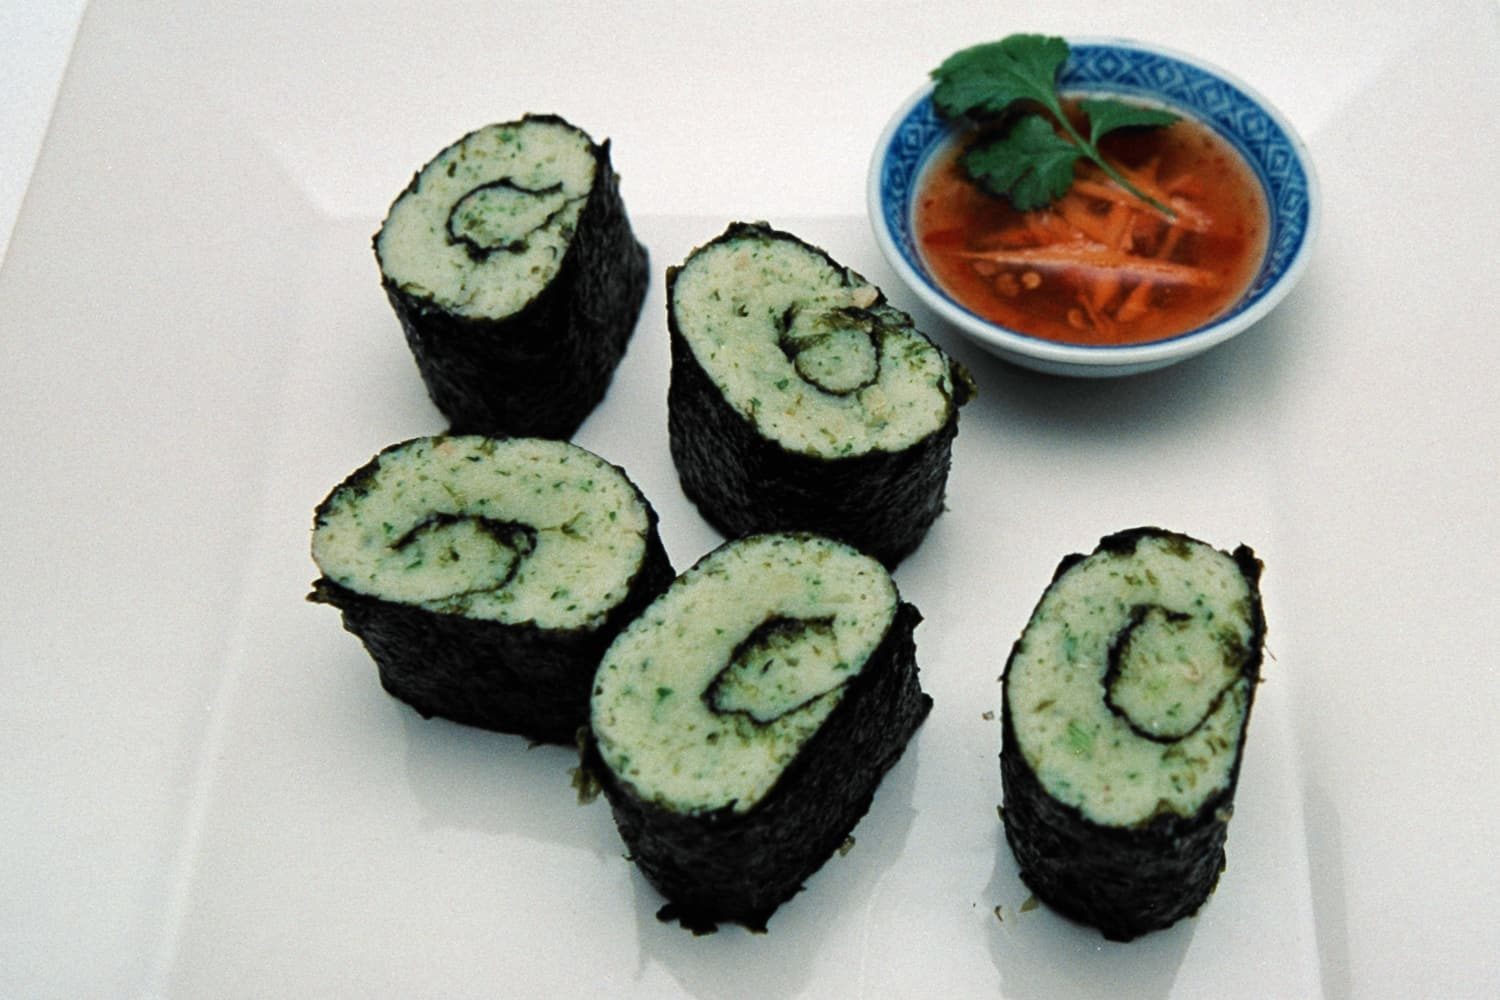 Steamed Seafood Nori Rolls